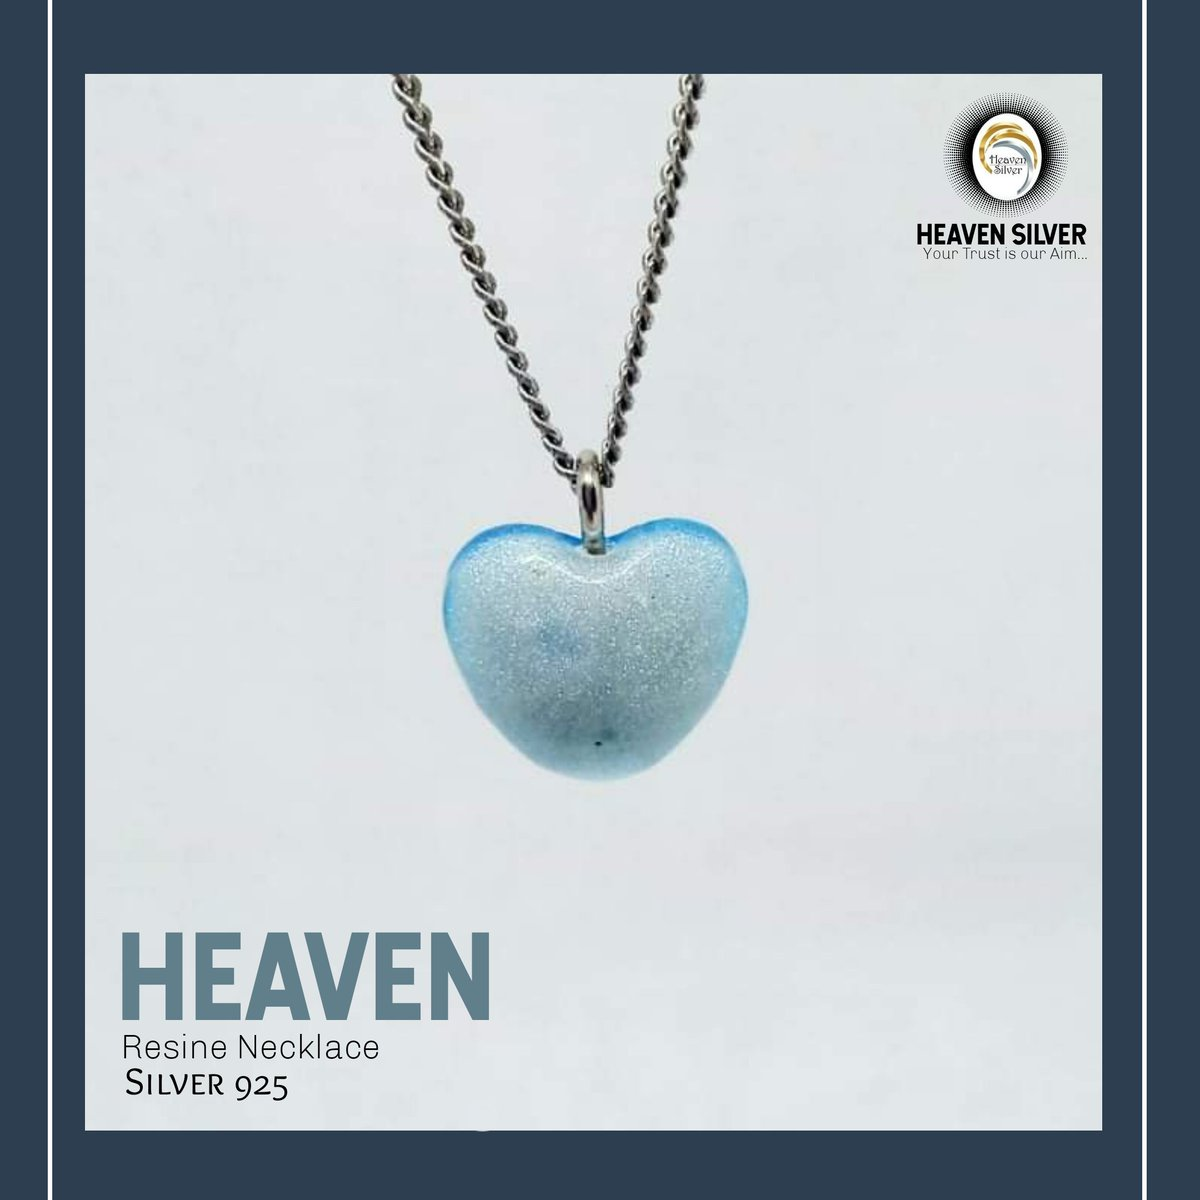 Good morning 😍 Heaven Resine Necklace Available Now  #Silver925 #Necklace #Resine #Heart #Blue #Heaven #Silver #Alex Your #Trust is our #Aim...